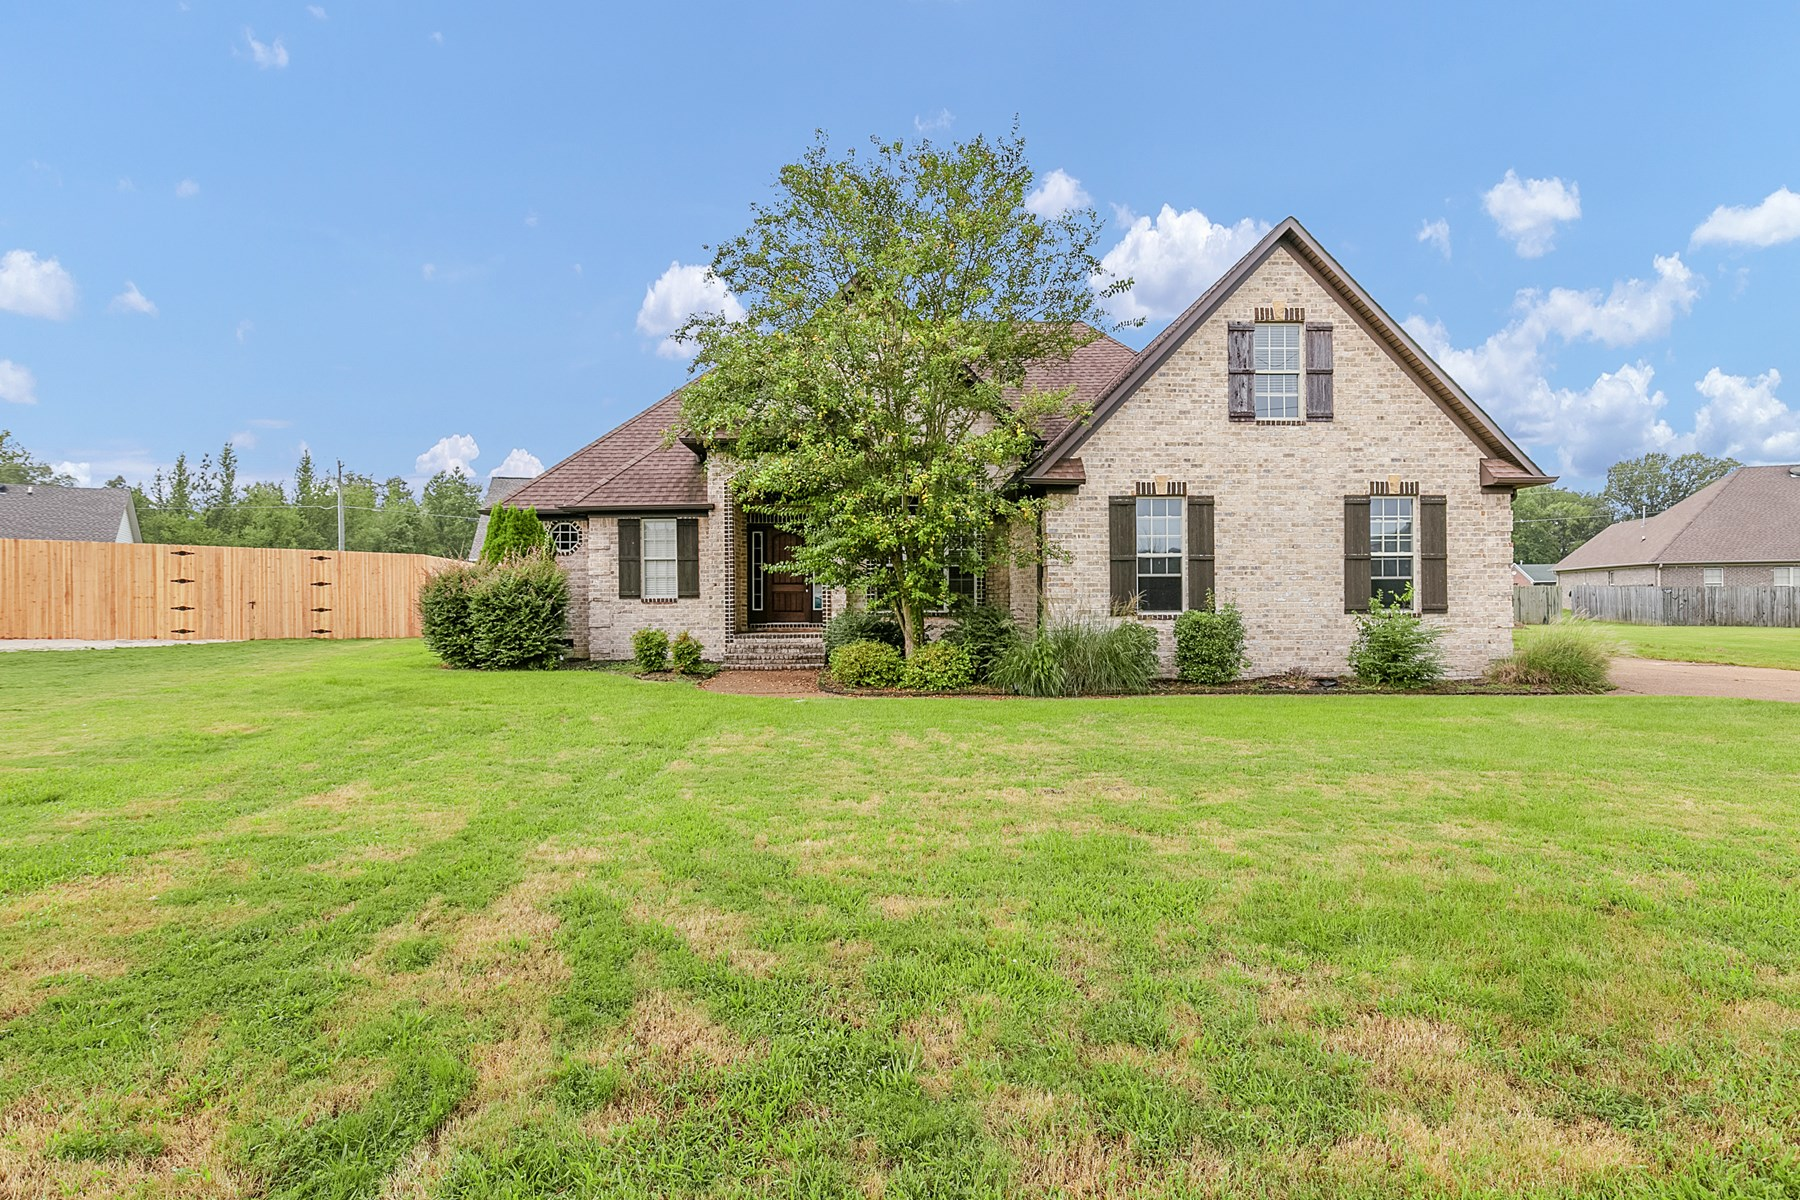 Brick Home for Sale in South Gibson School Zone - Medina, TN